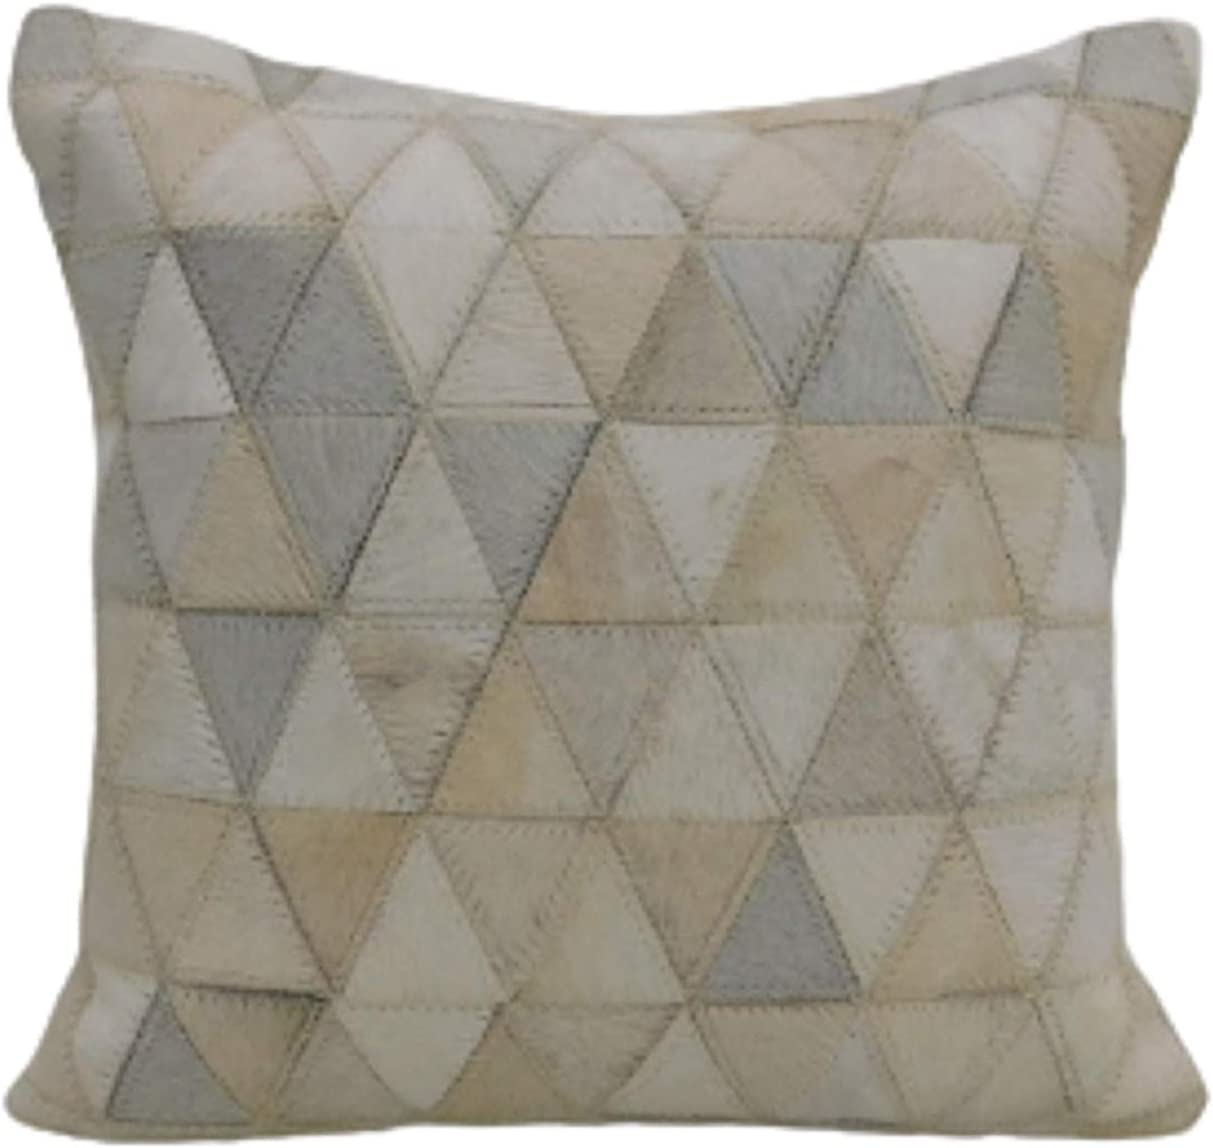 Furniche Hair Free shipping On Leather Cushion Cover Without X Seattle Mall 20 Filler White